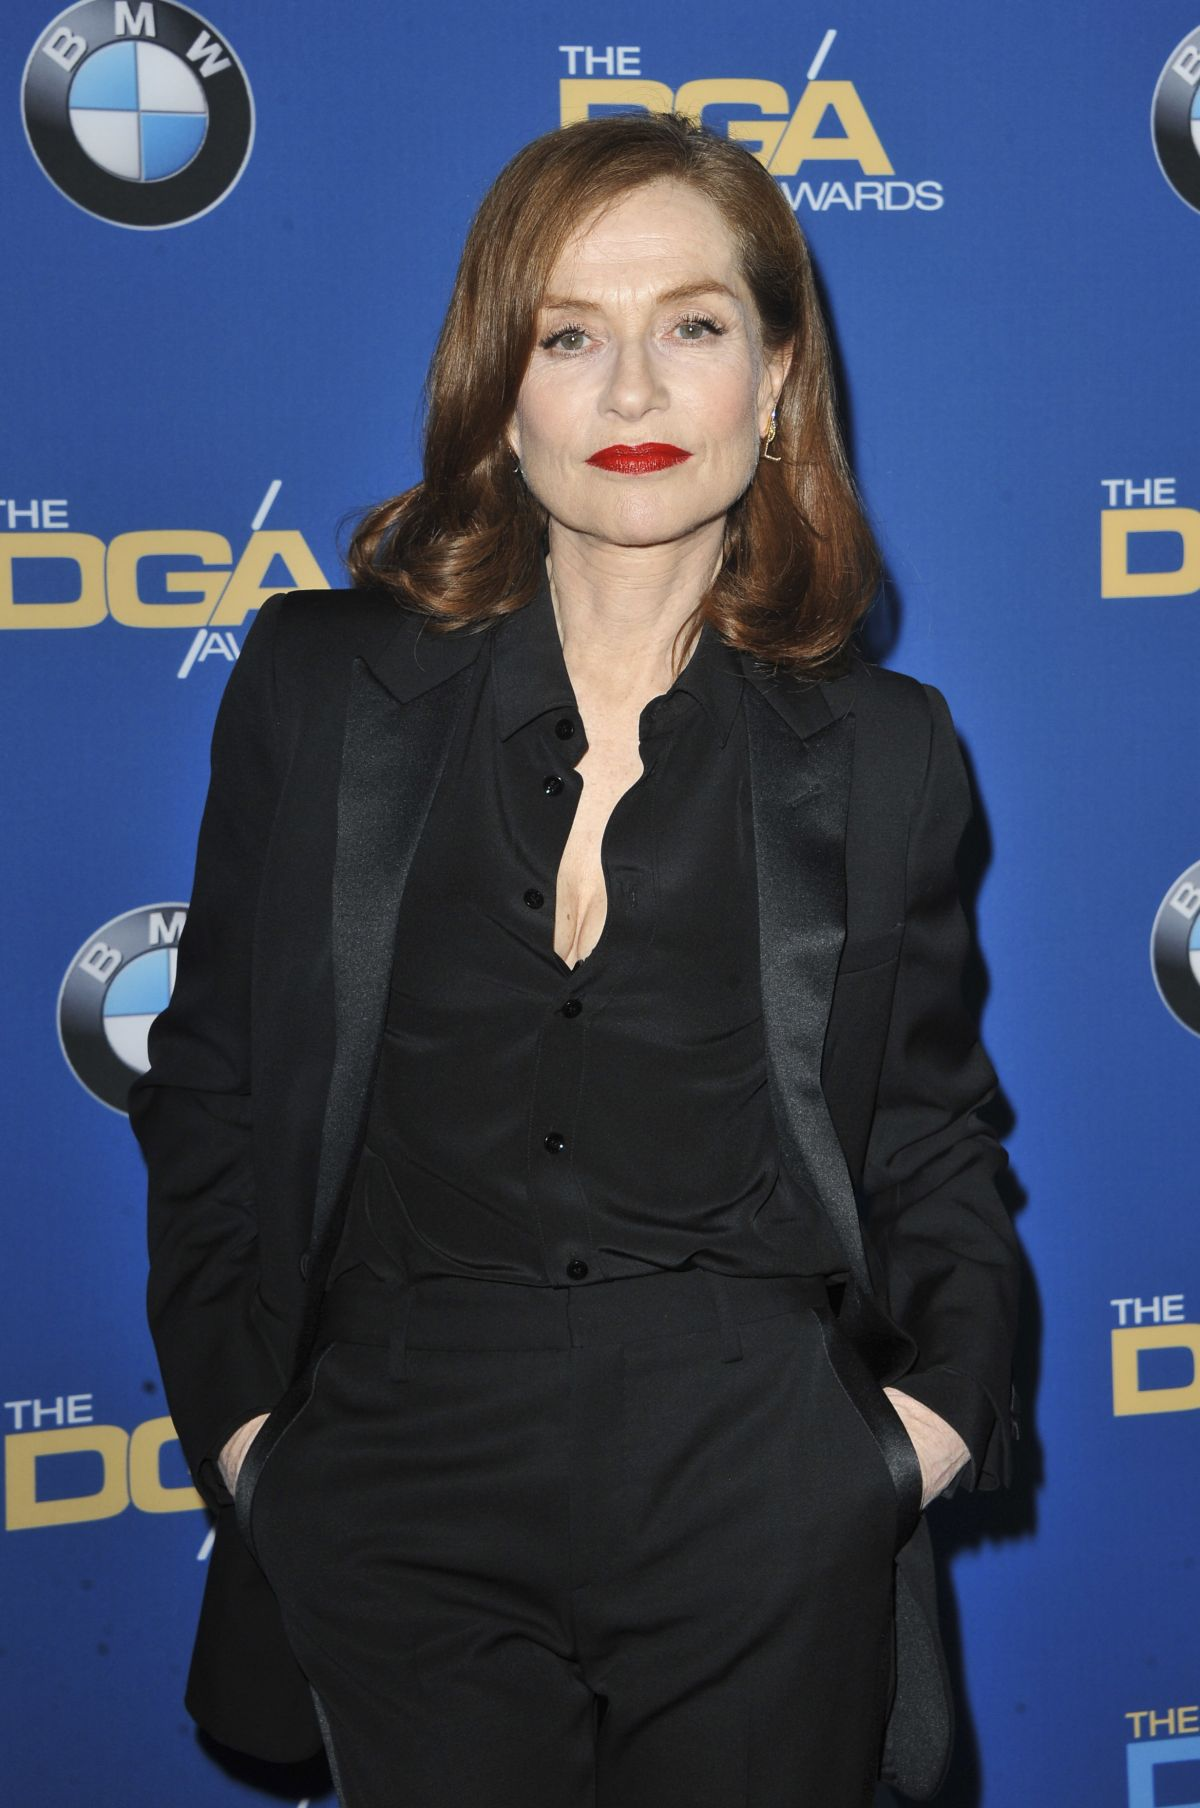 ISABELLE HUPPERT at 69th Annual Directors Guild of America Awards in Beverly Hills 02/04/2017